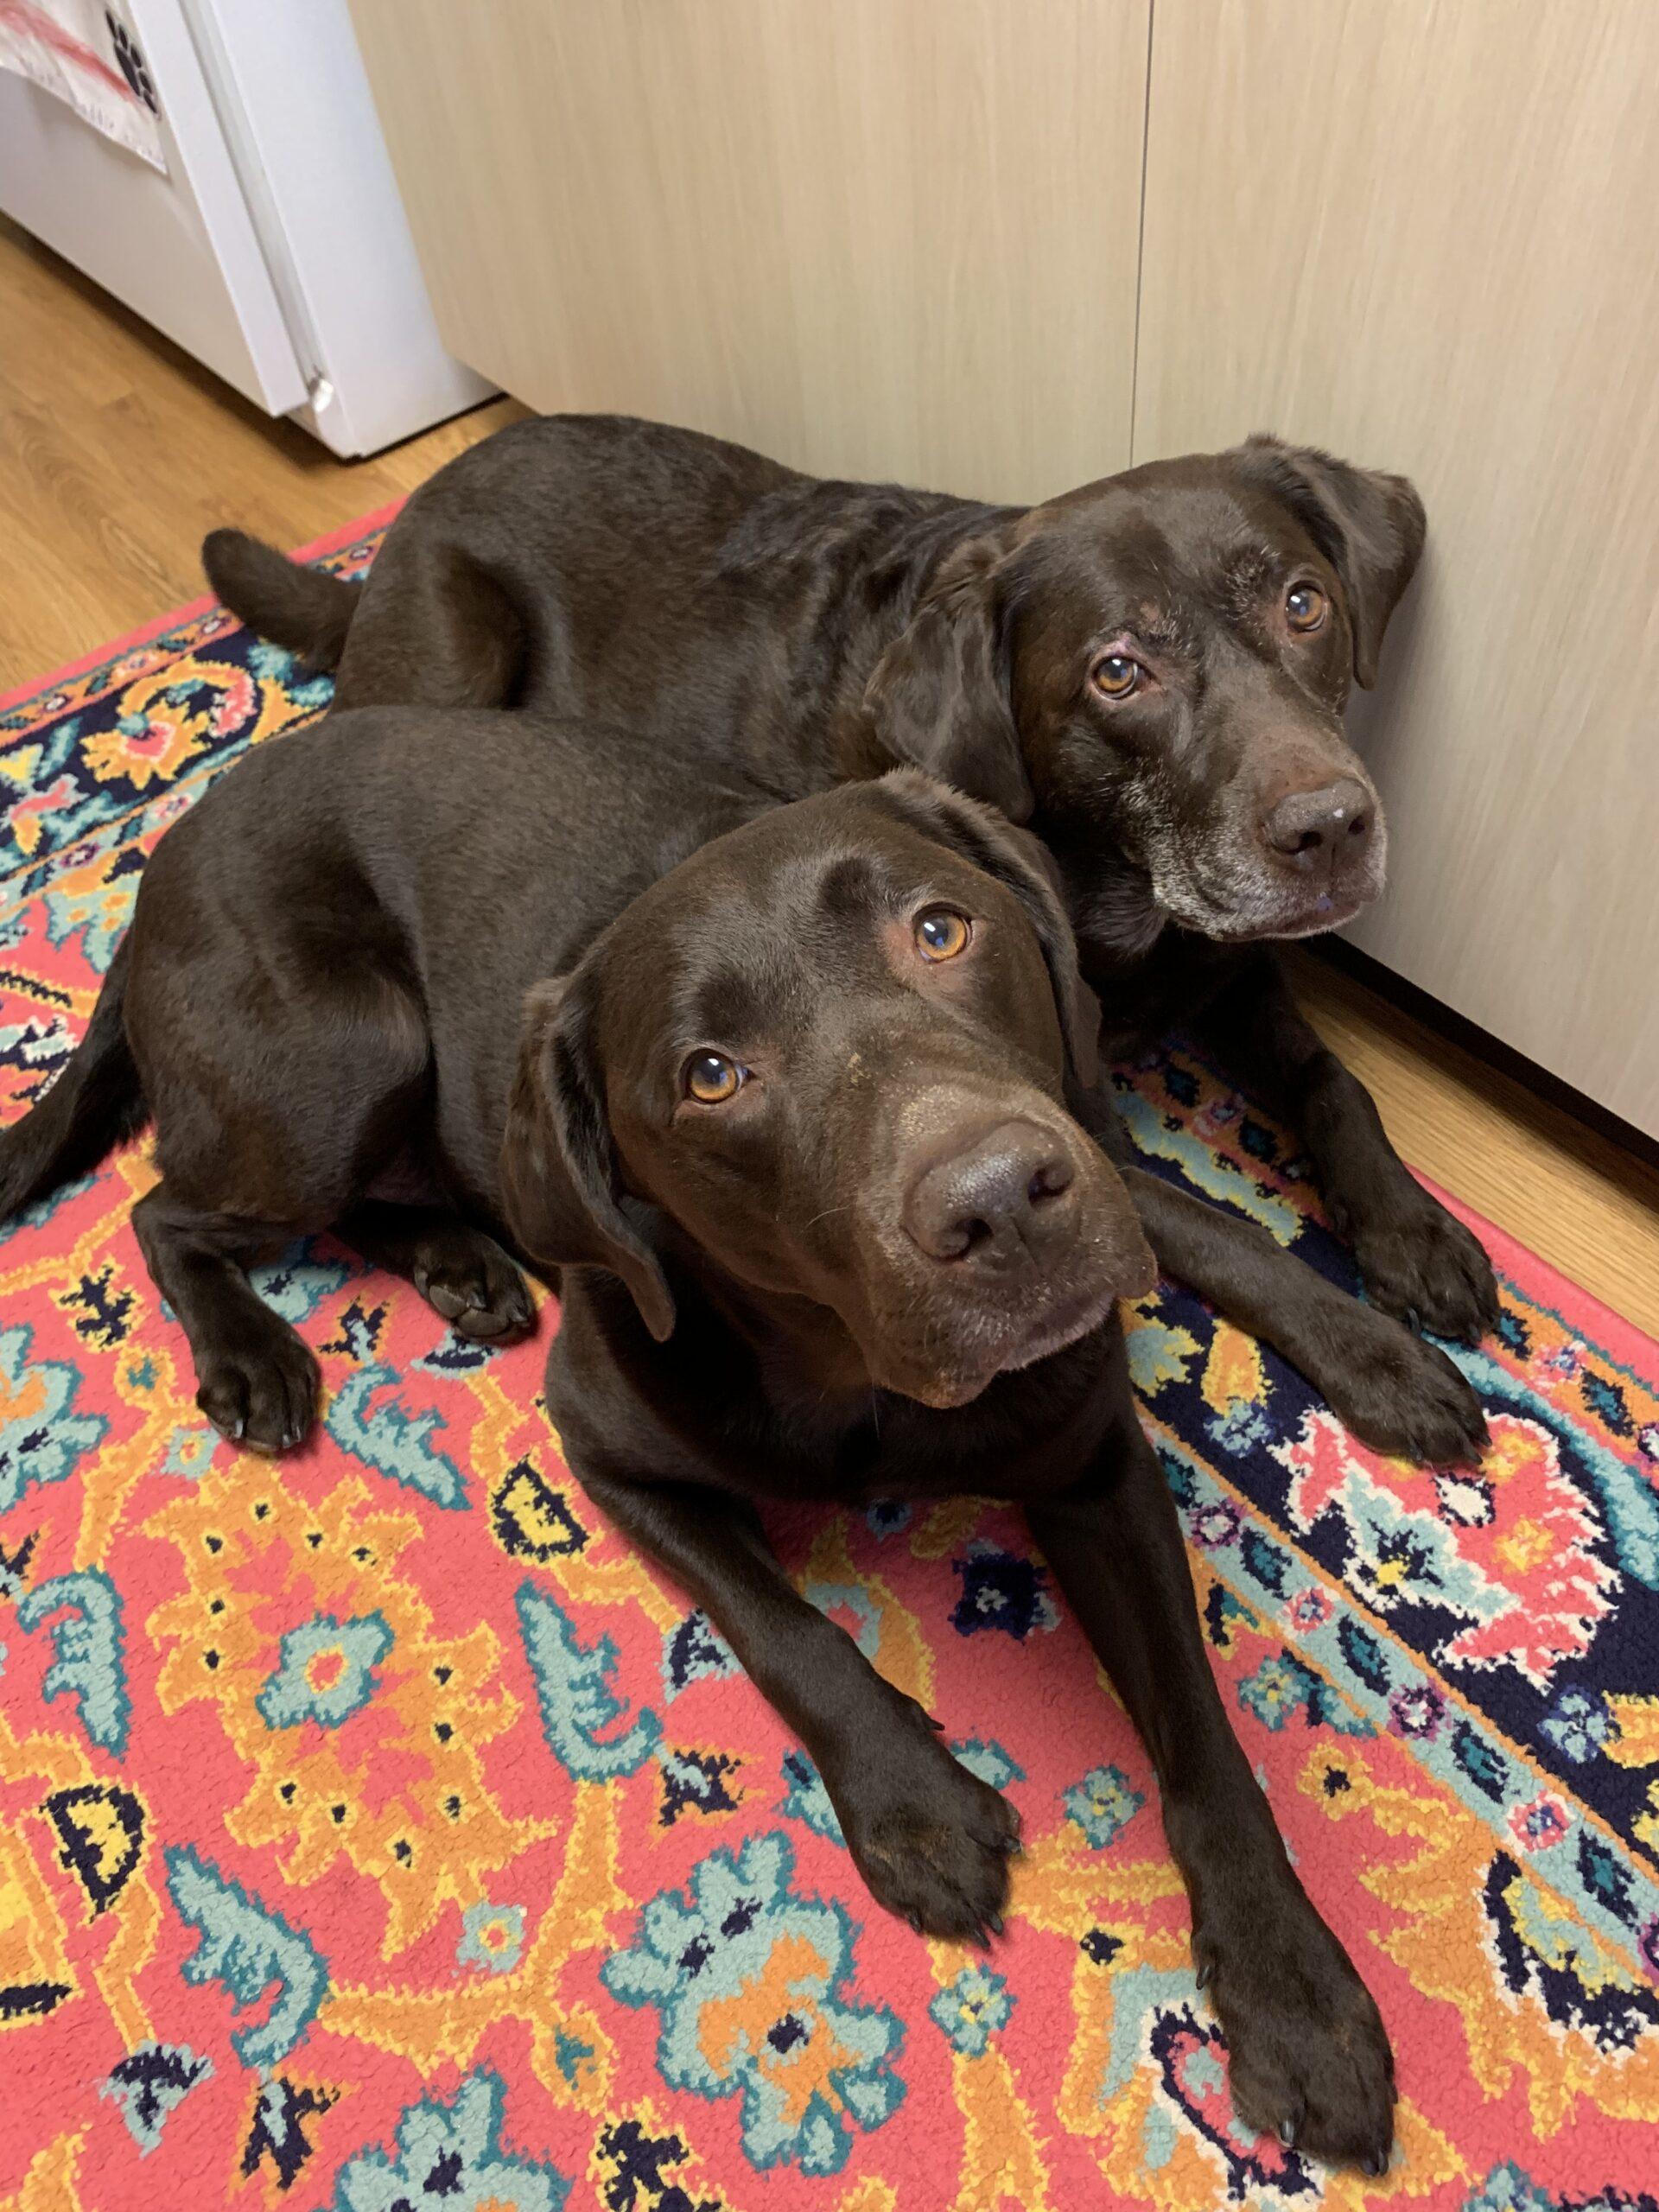 Two chocolate Labs laying on a colorful rug